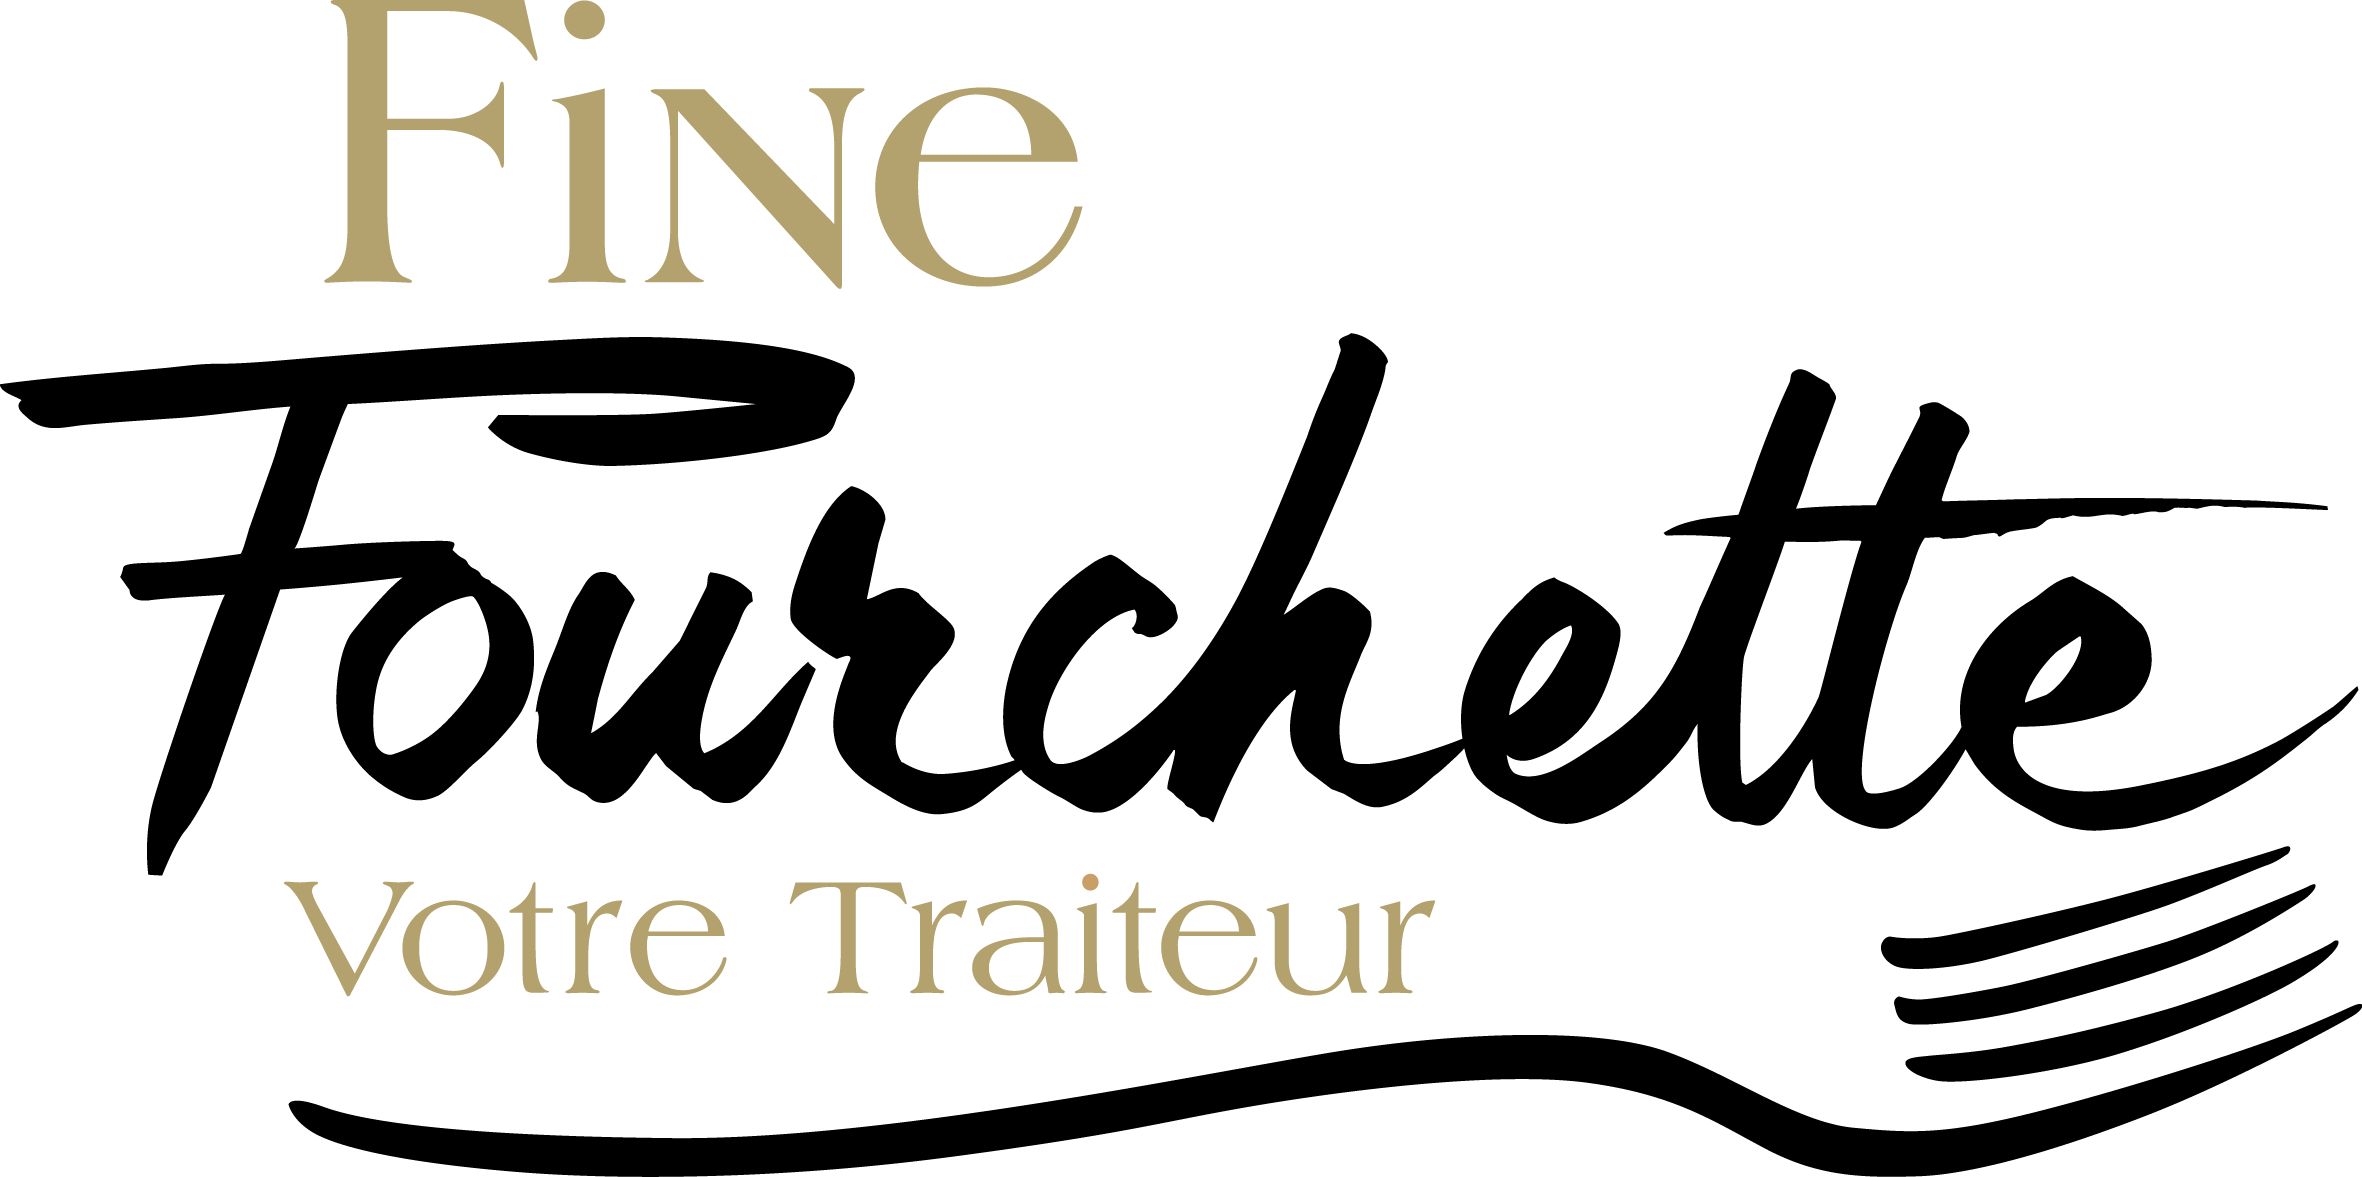 Fine Fourchette